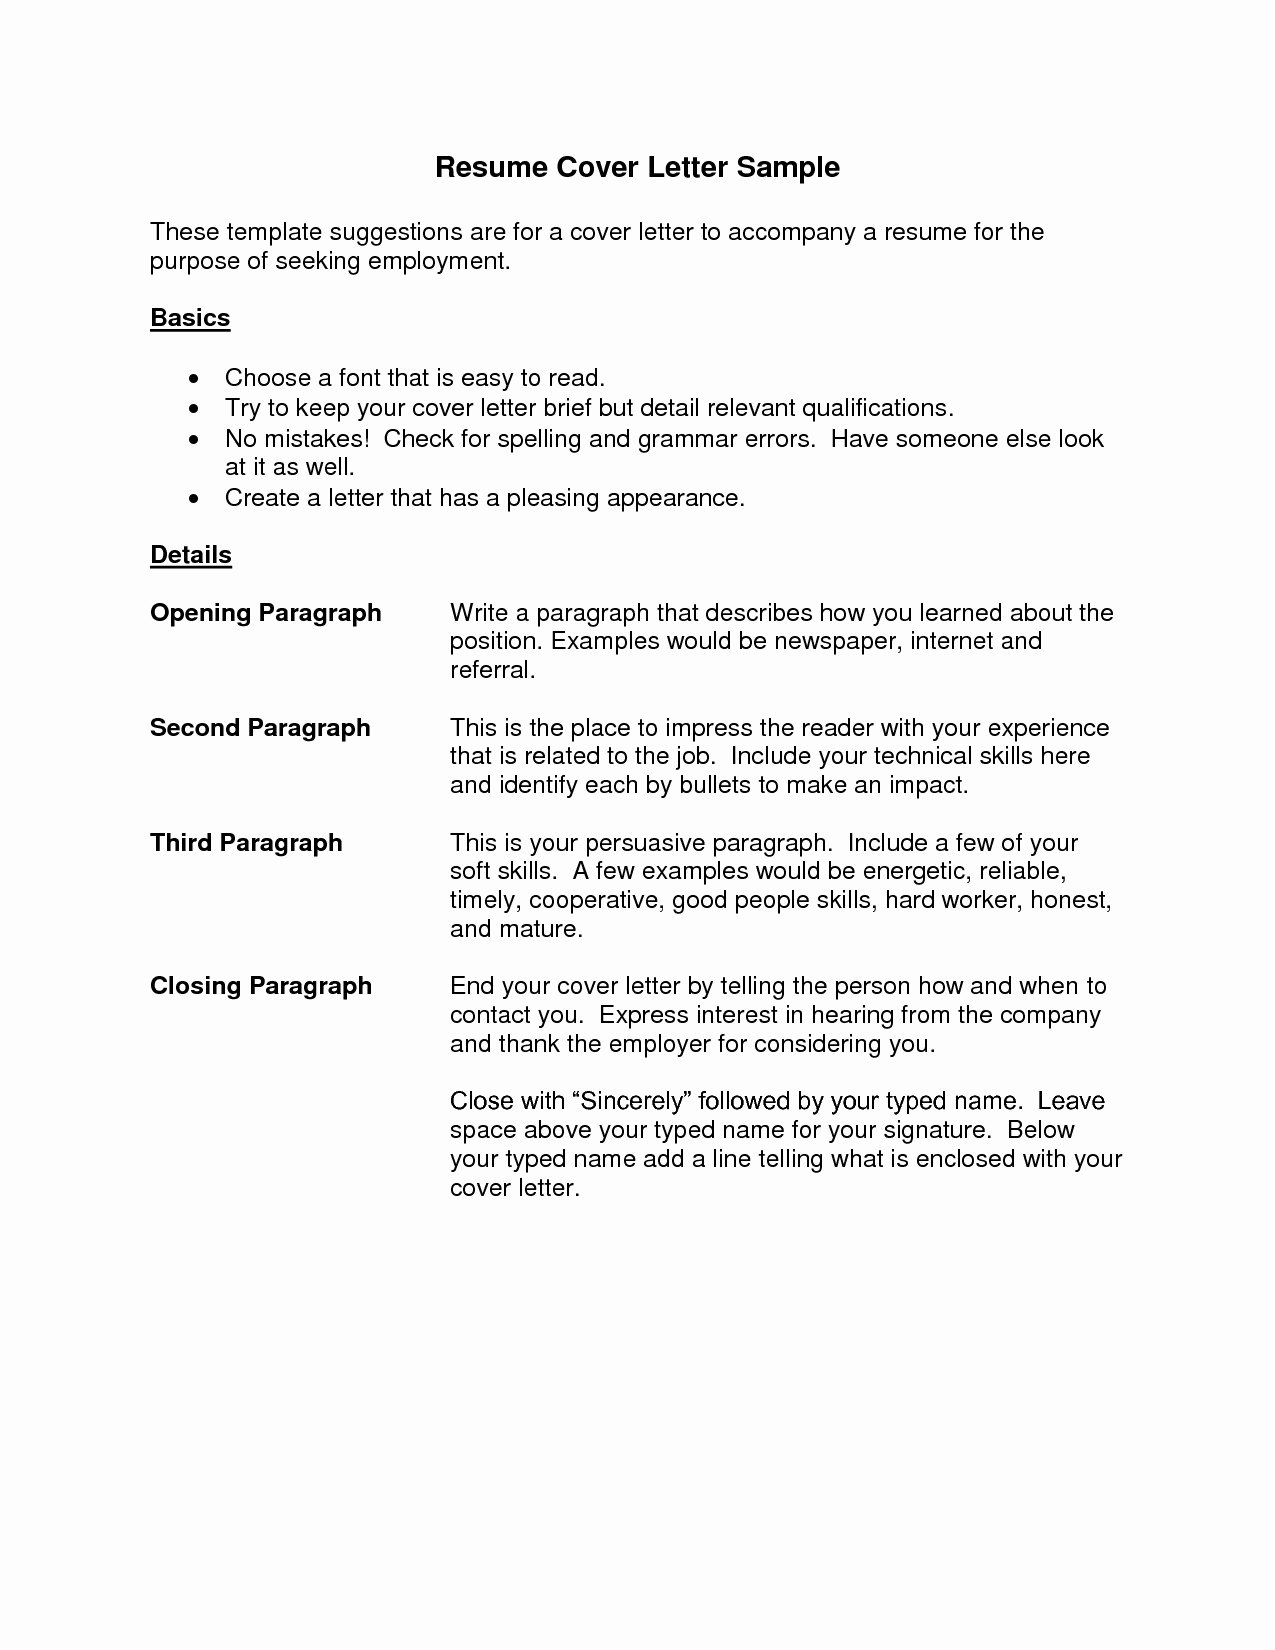 Free Resume Cover Letter Template Luxury Cover Letter Resume Best Templatesimple Cover Letter